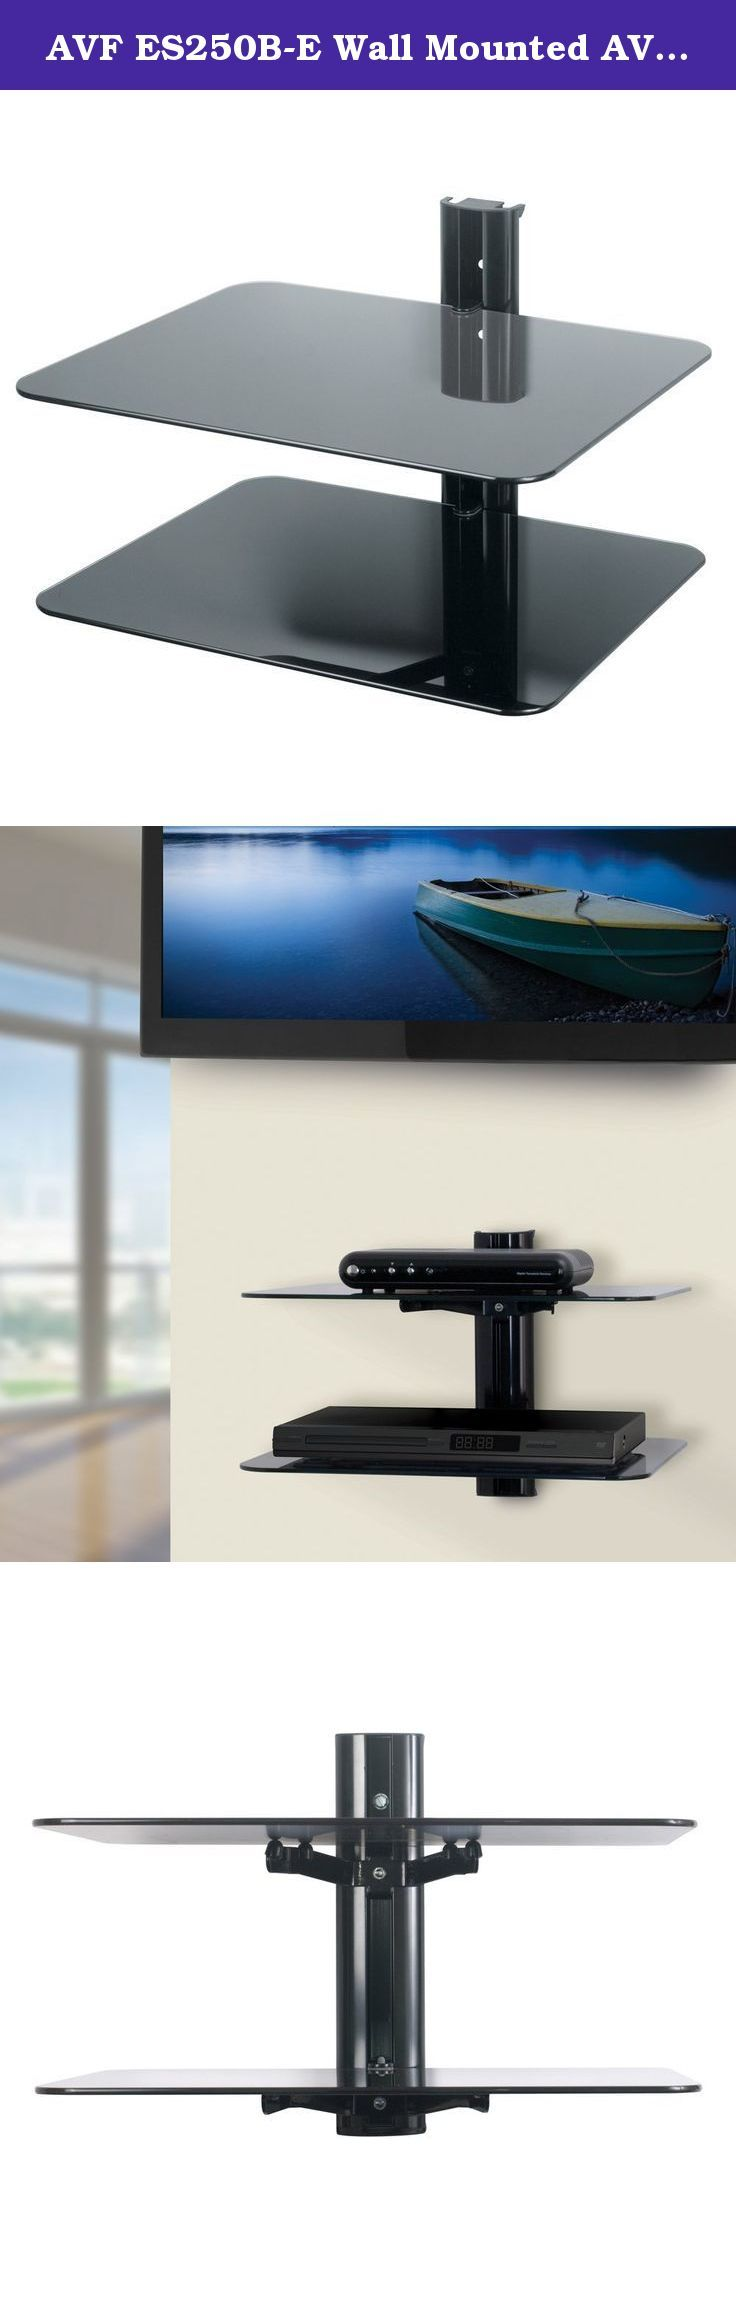 AVF ES250B-E Wall Mounted AV Component Shelving System - 2 Shelves, Black. The ES250B-E is an A/V wall shelf unit with two shelves. It's great for a cable box, satellite box, DVR, Blu Ray, DVD, video game consoles, routers, speakers, Sonos devices, other audio devices, and even your prized snow globe collection (for example). The ES250B-E shelving unit not only saves valuable space, but it also safely secures your AV equipment to the wall. Installation is quick and easy. The...